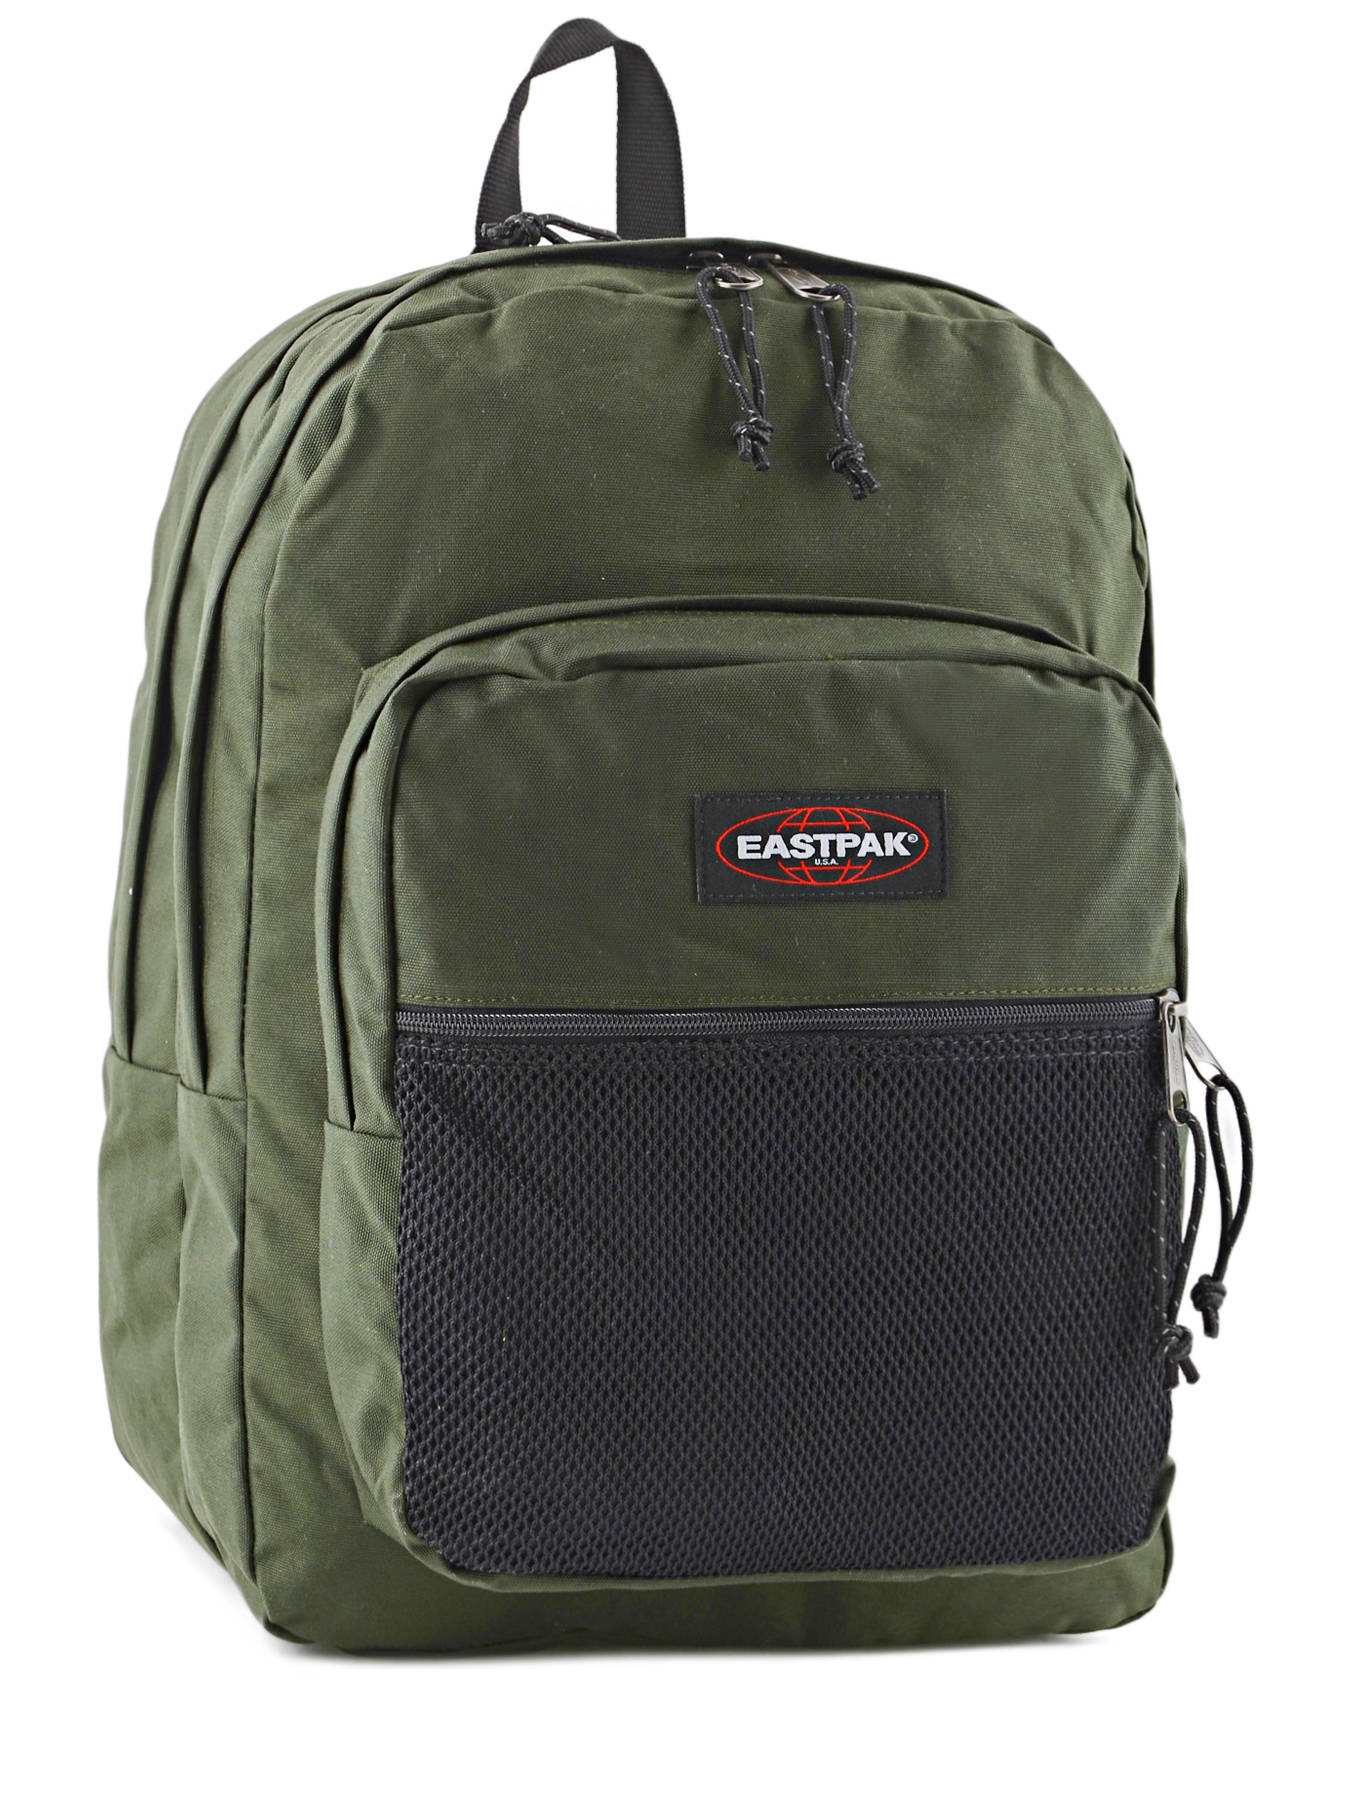 Rugzak Eastpak Rugzak Eastpak Pbg Authentic Pbg Authentic Op Edisac Be